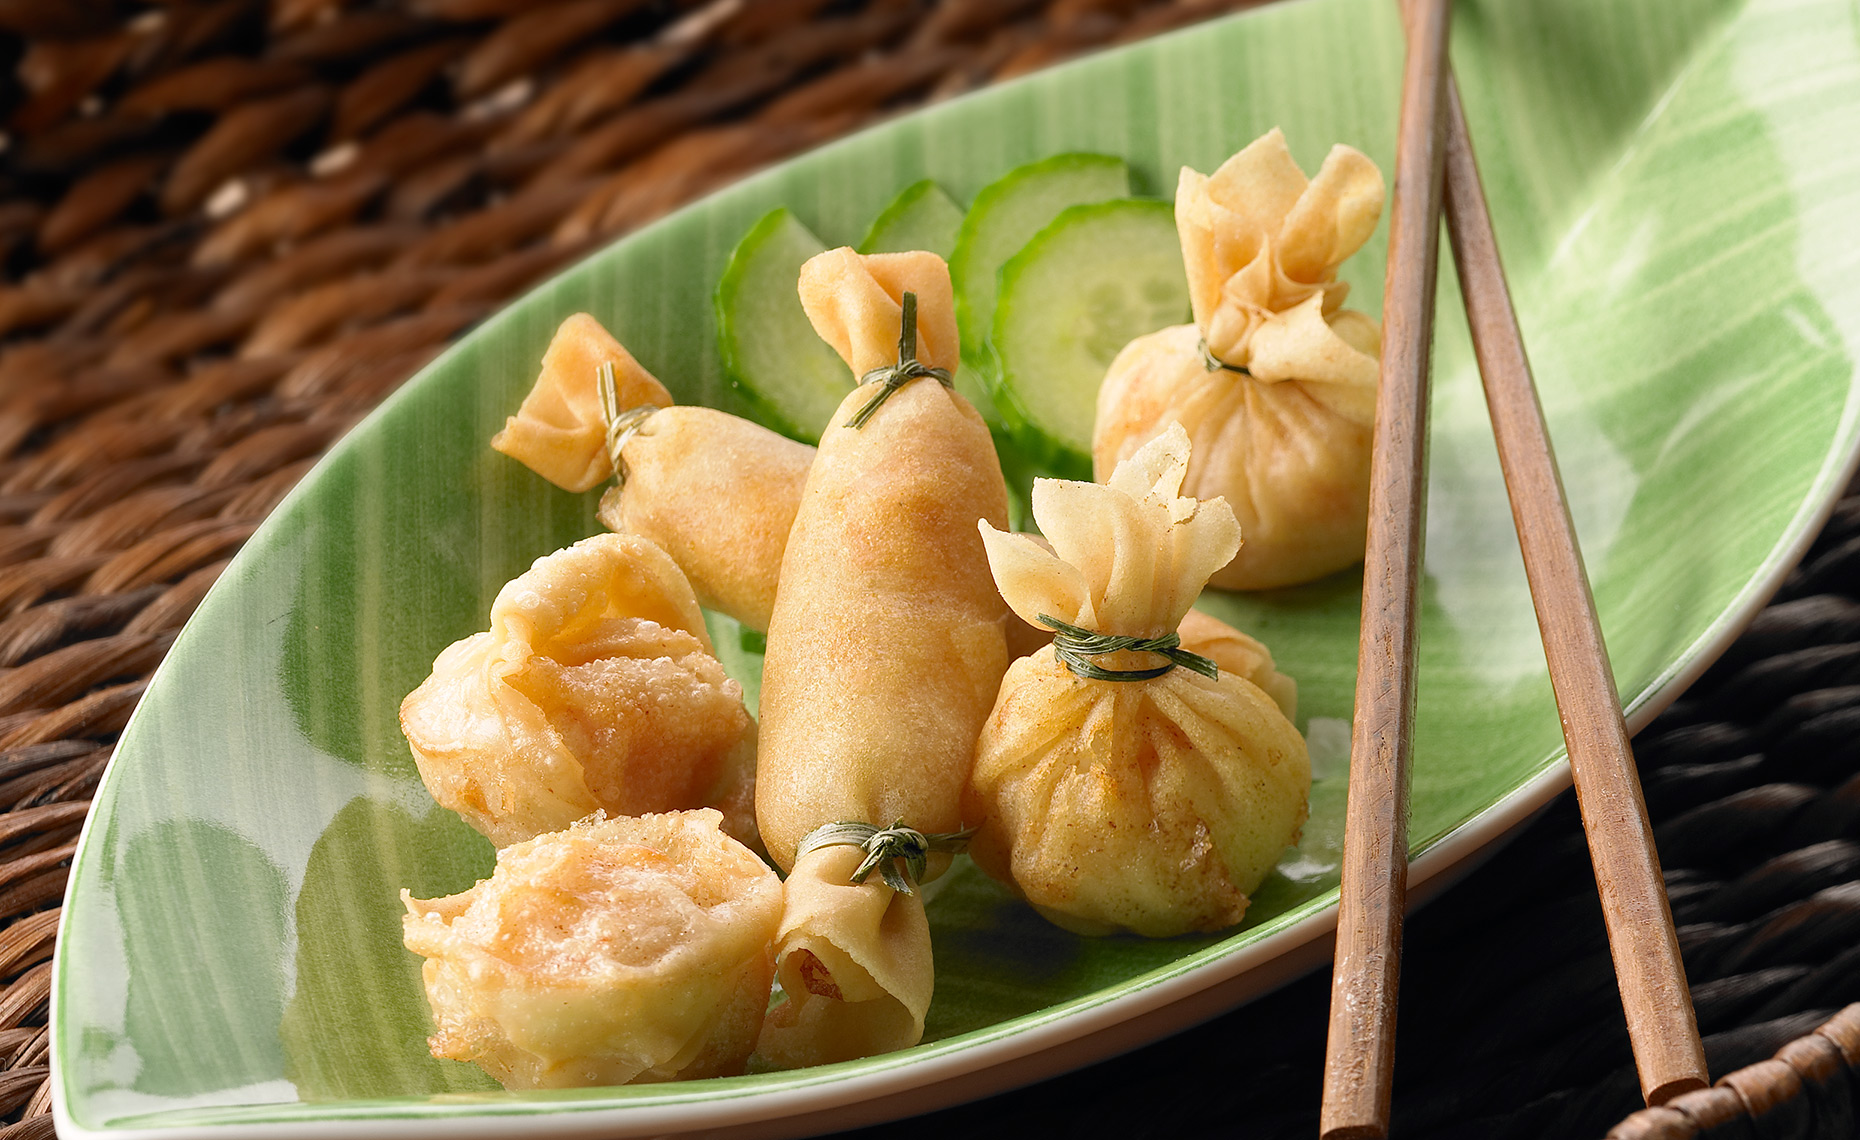 Food Photographer, Vegetable Photography, Fruit Photography, Appetizer Photography | Pohuski Studios,  Fried Dim Sum